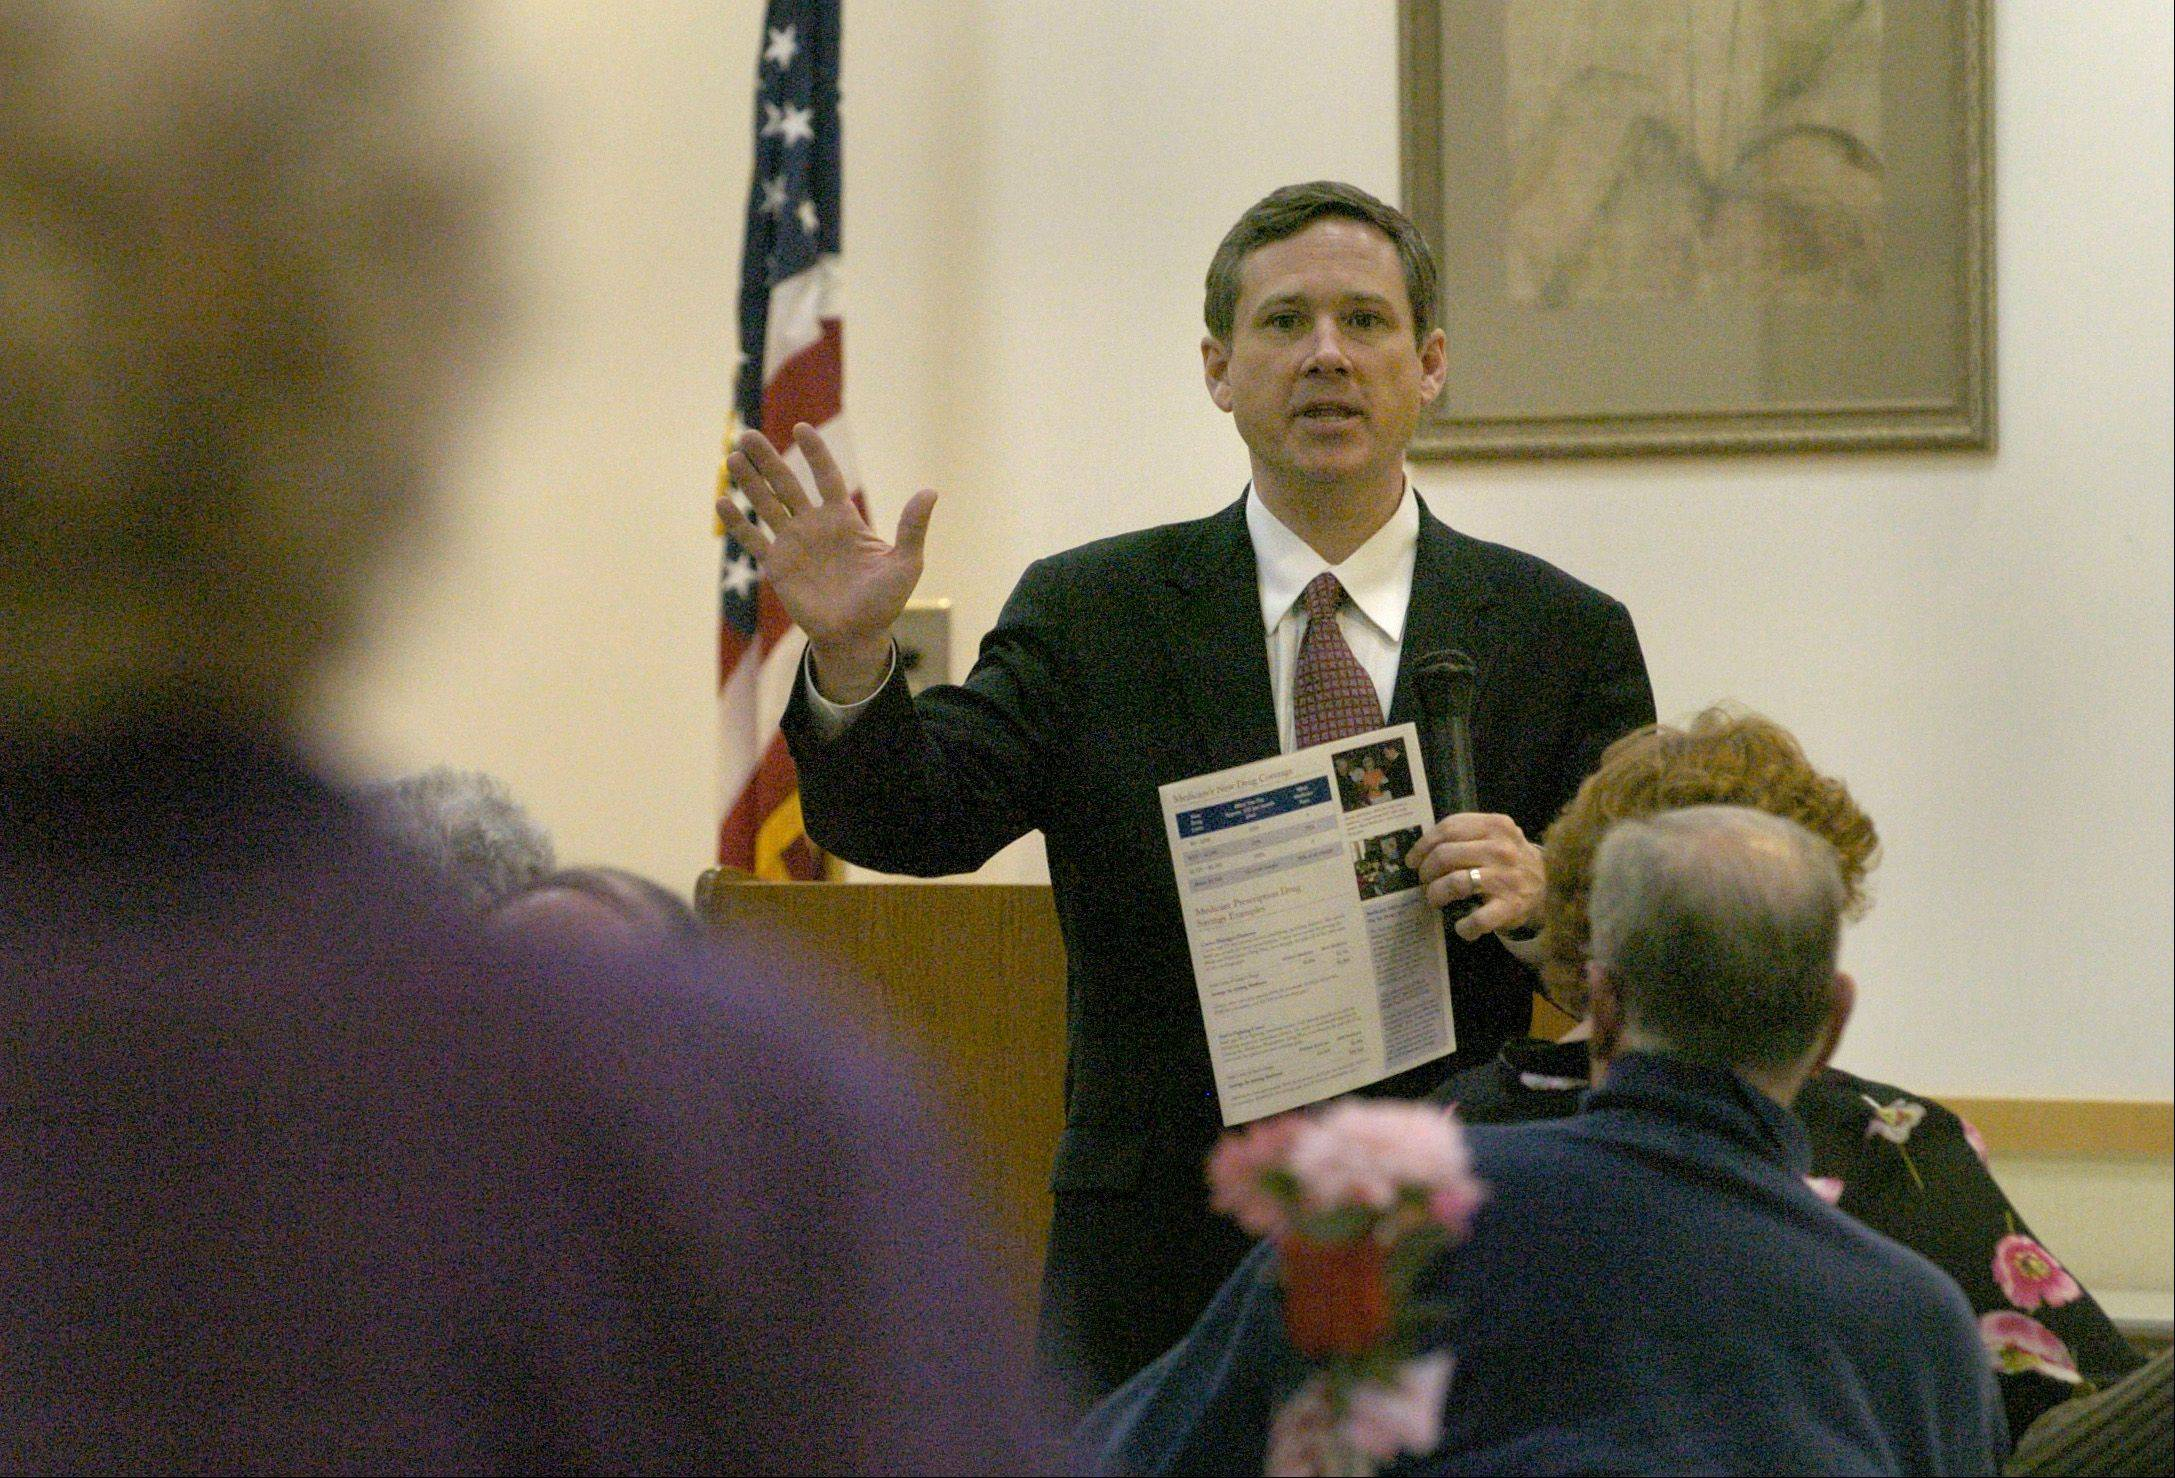 Then-Congressman Mark Kirk explains Medicare Part D to seniors at the Arlington Heights Senior Center.